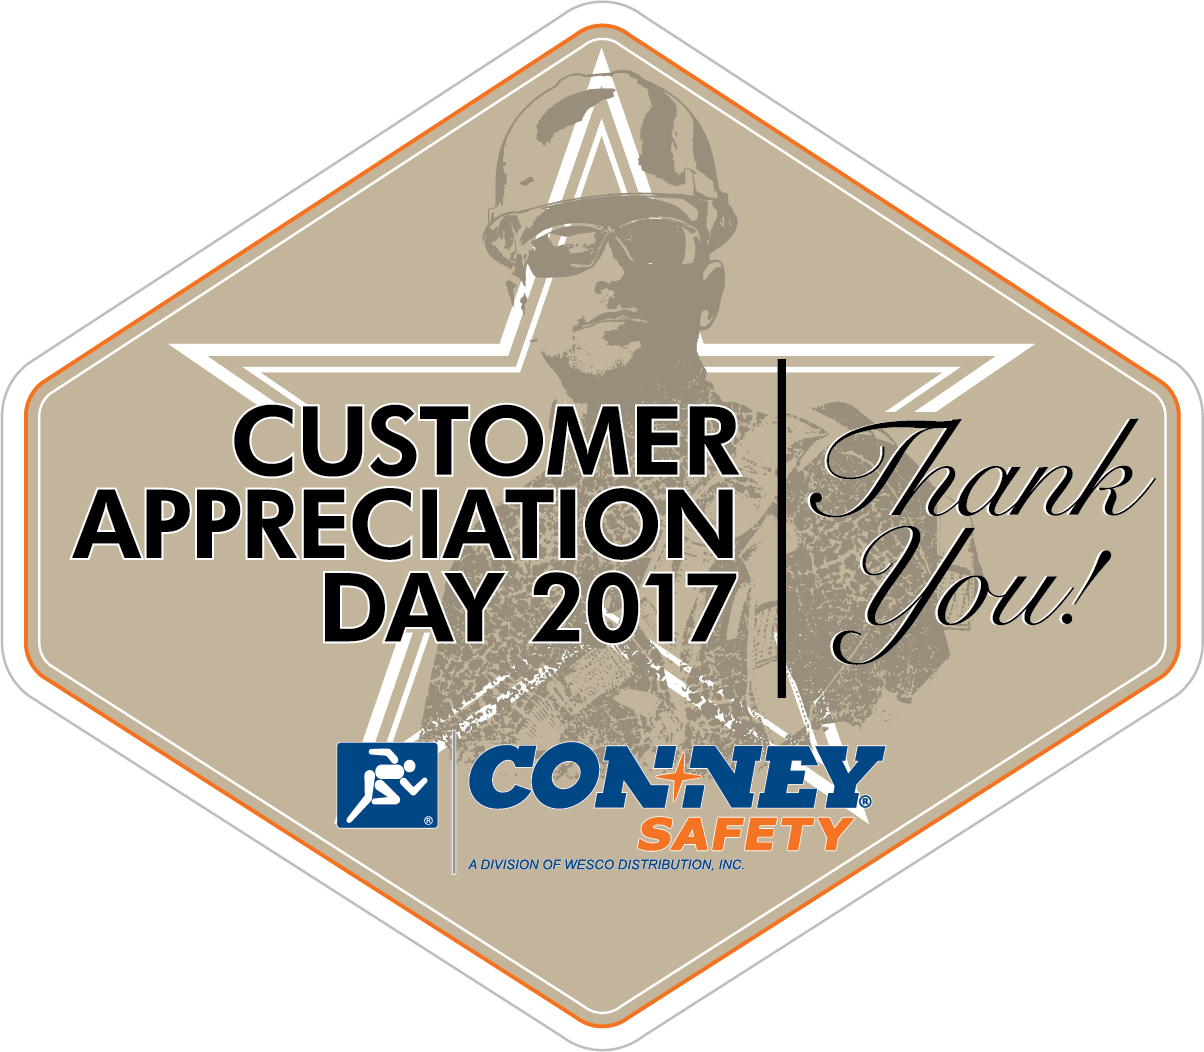 Customer Appreciation Day 2017